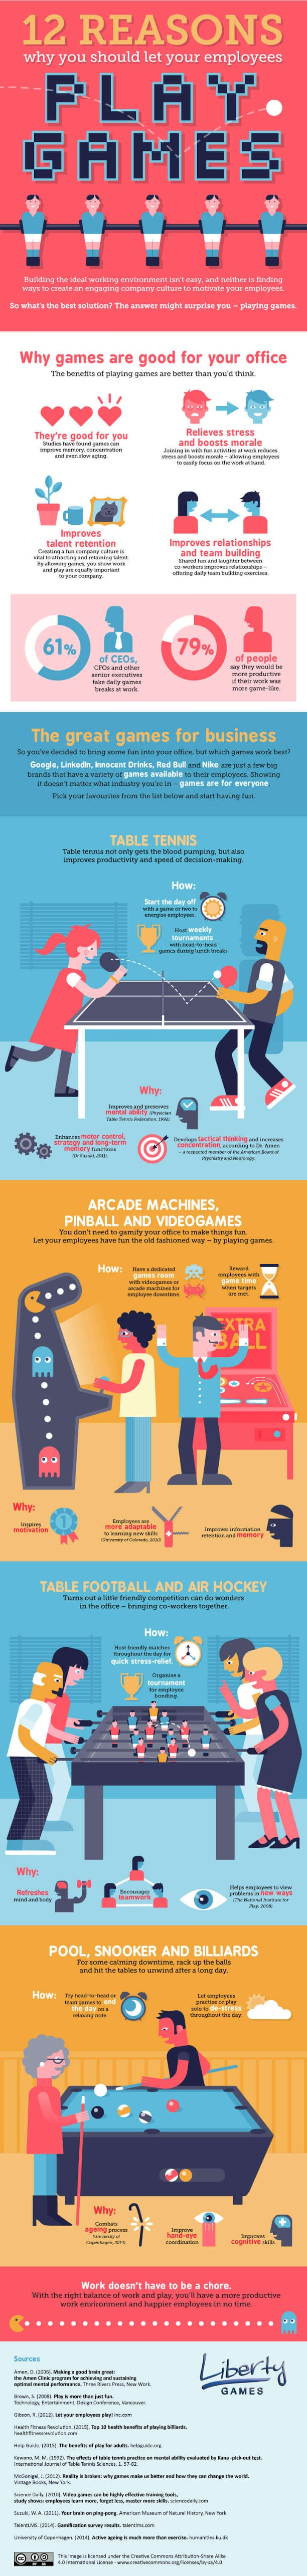 12 Reasons Why You Should Let Your Employees Play Games #infographic